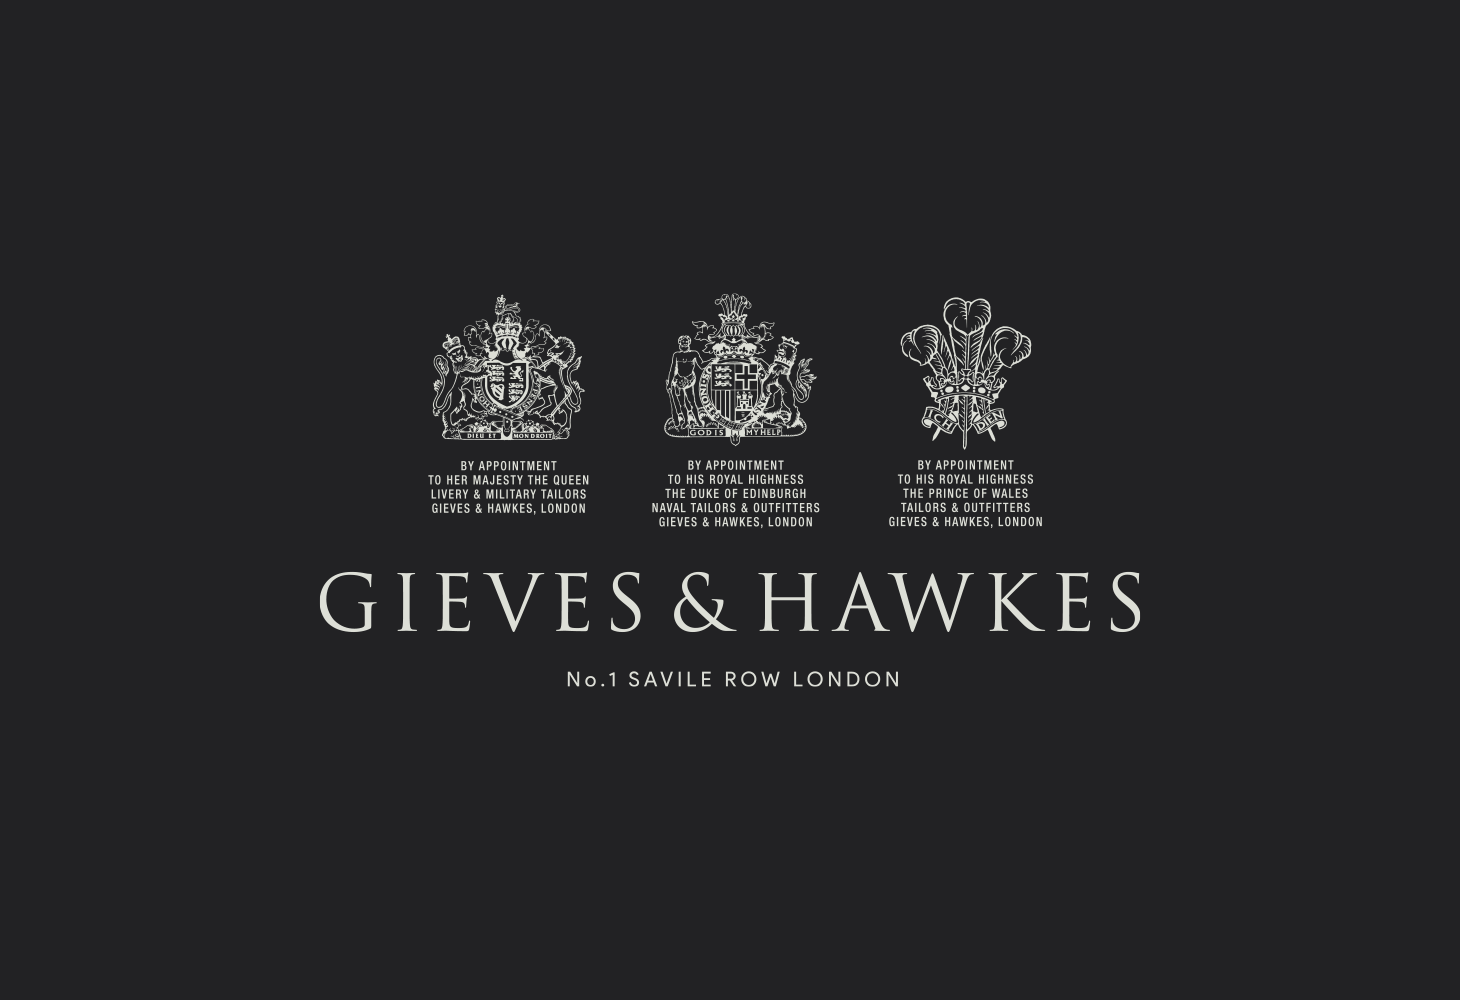 Gieves & Hawkes - Logomark lock up and standards